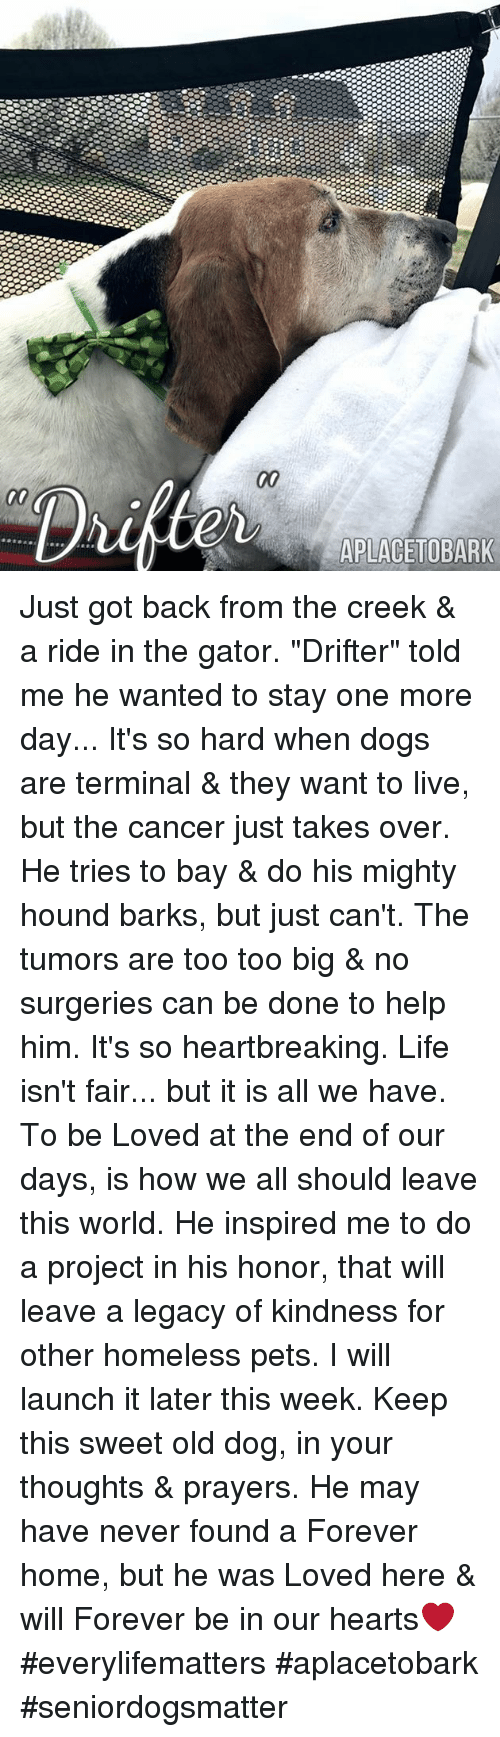 "Dogs, Memes, and 🤖: APLACETOBARK Just got back from the creek & a ride in the gator. ""Drifter"" told me he wanted to stay one more day...   It's so hard when dogs are terminal & they want to live, but the cancer just takes over.  He tries to bay & do his mighty hound barks, but just can't. The tumors are too too big & no surgeries can be done to help him. It's so heartbreaking. Life isn't fair... but it is all we have. To be Loved at the end of our days, is how we all should leave this world.  He inspired me to do a project in his honor, that will leave a legacy of kindness for other homeless pets. I will launch it later this week.   Keep this sweet old dog, in your thoughts & prayers.   He may have never found a Forever home, but he was Loved here & will Forever be in our hearts❤️  #everylifematters #aplacetobark #seniordogsmatter"